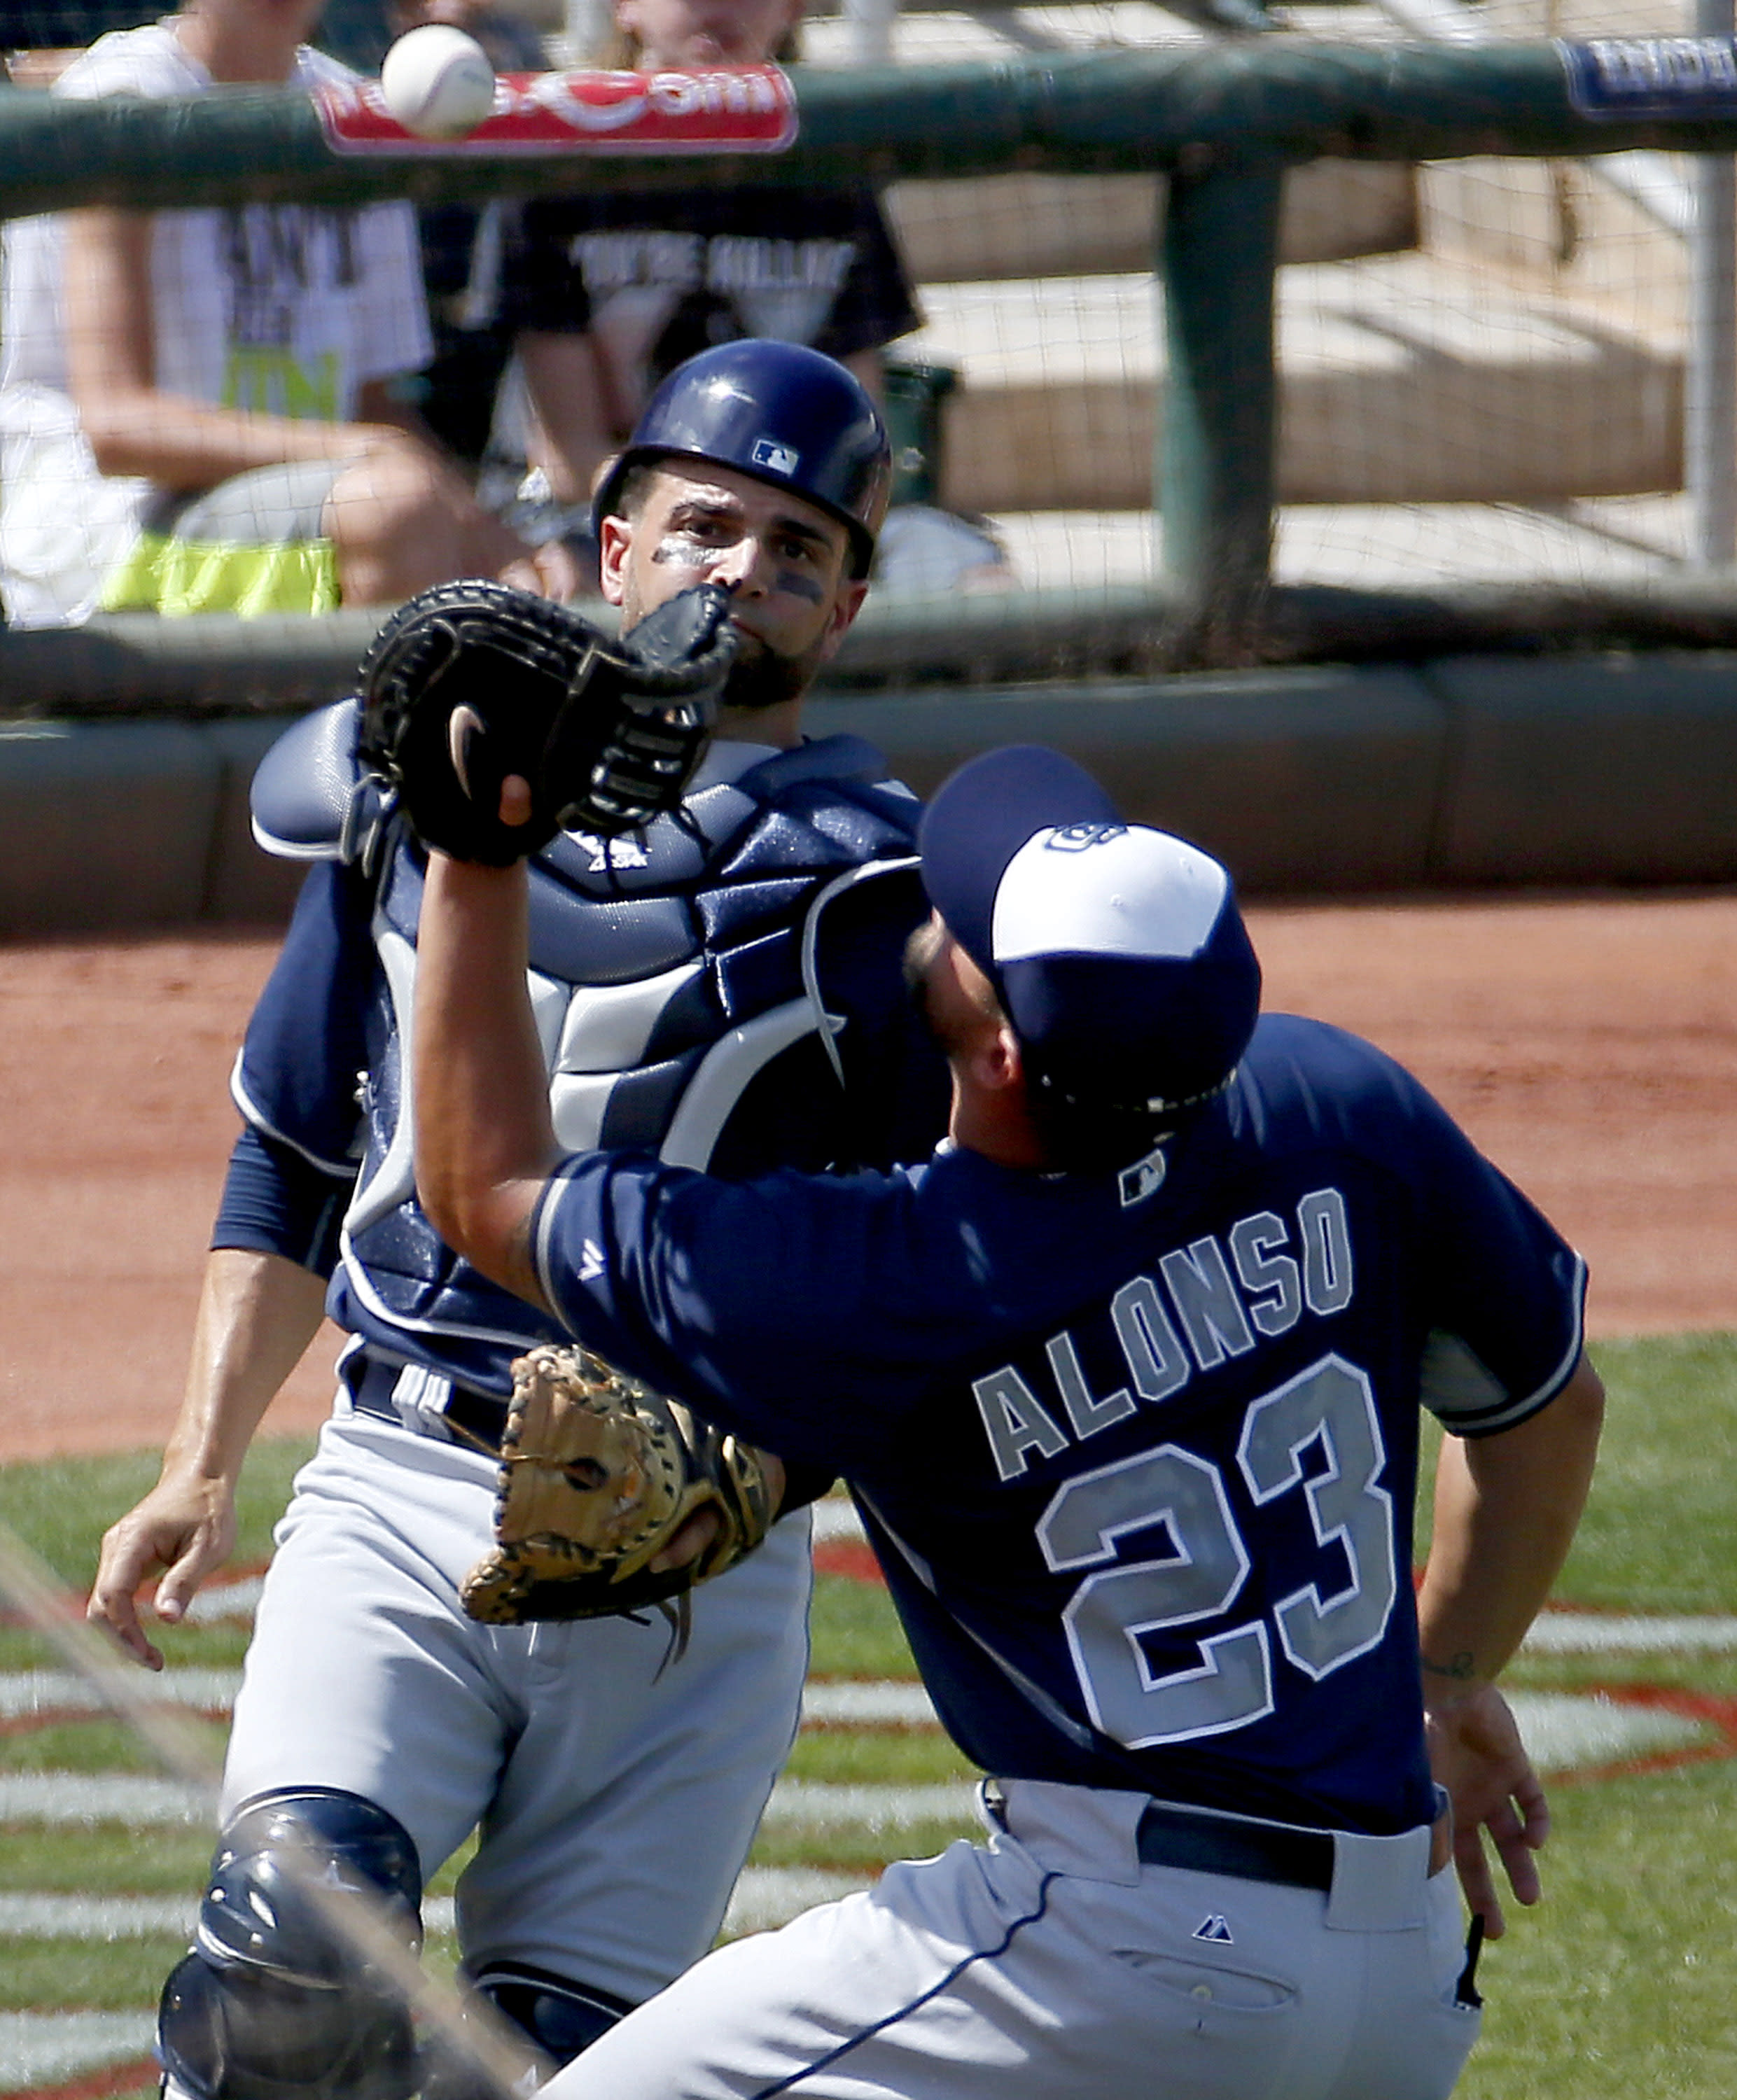 Padres hit 3 homers off DeSclafani, beat Reds 6-3